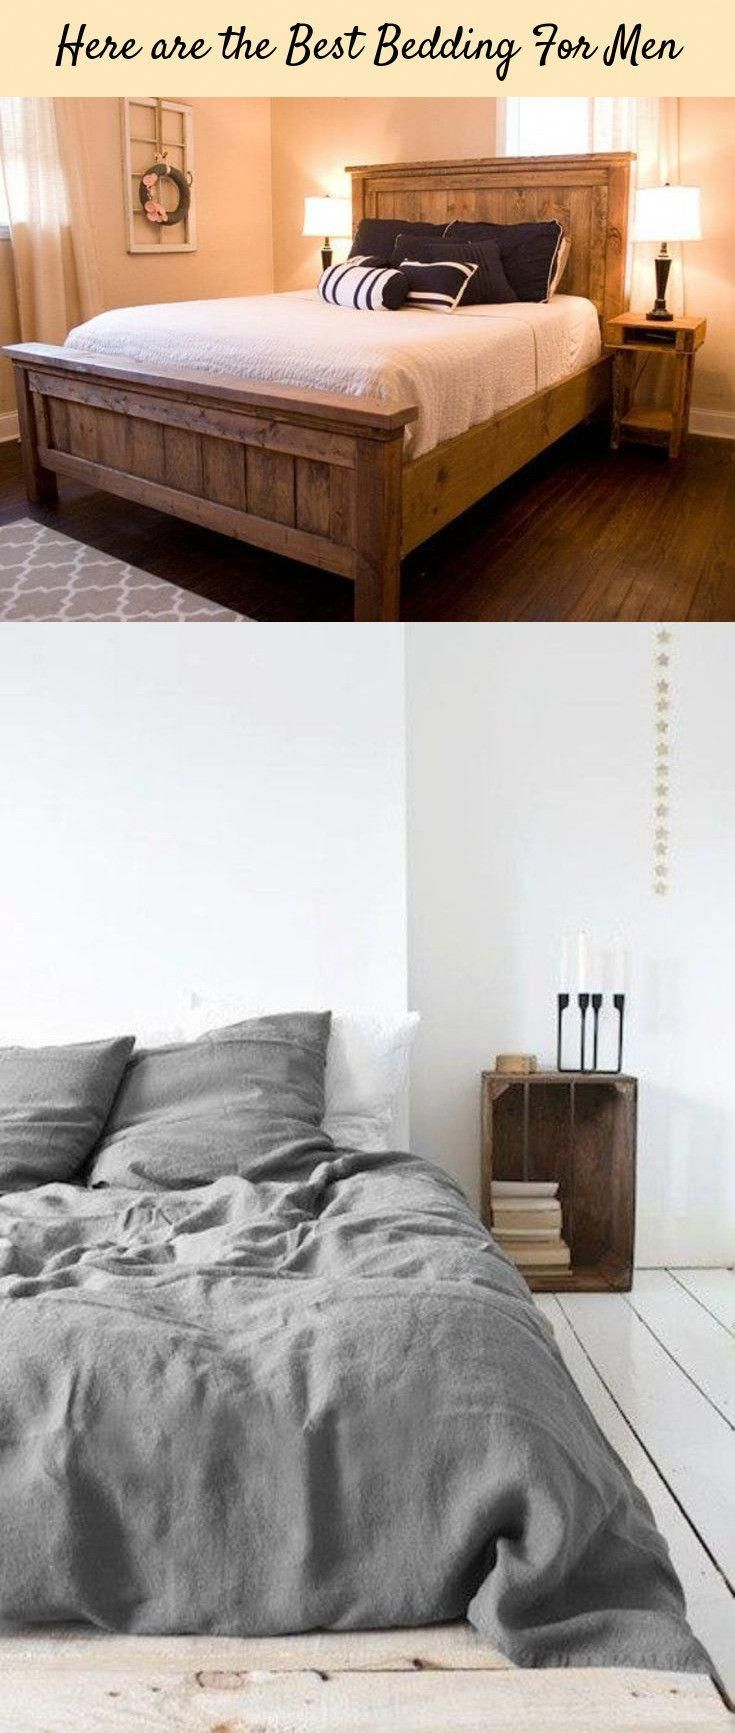 7 Cool Bed Room Concepts #coolbeddingsets